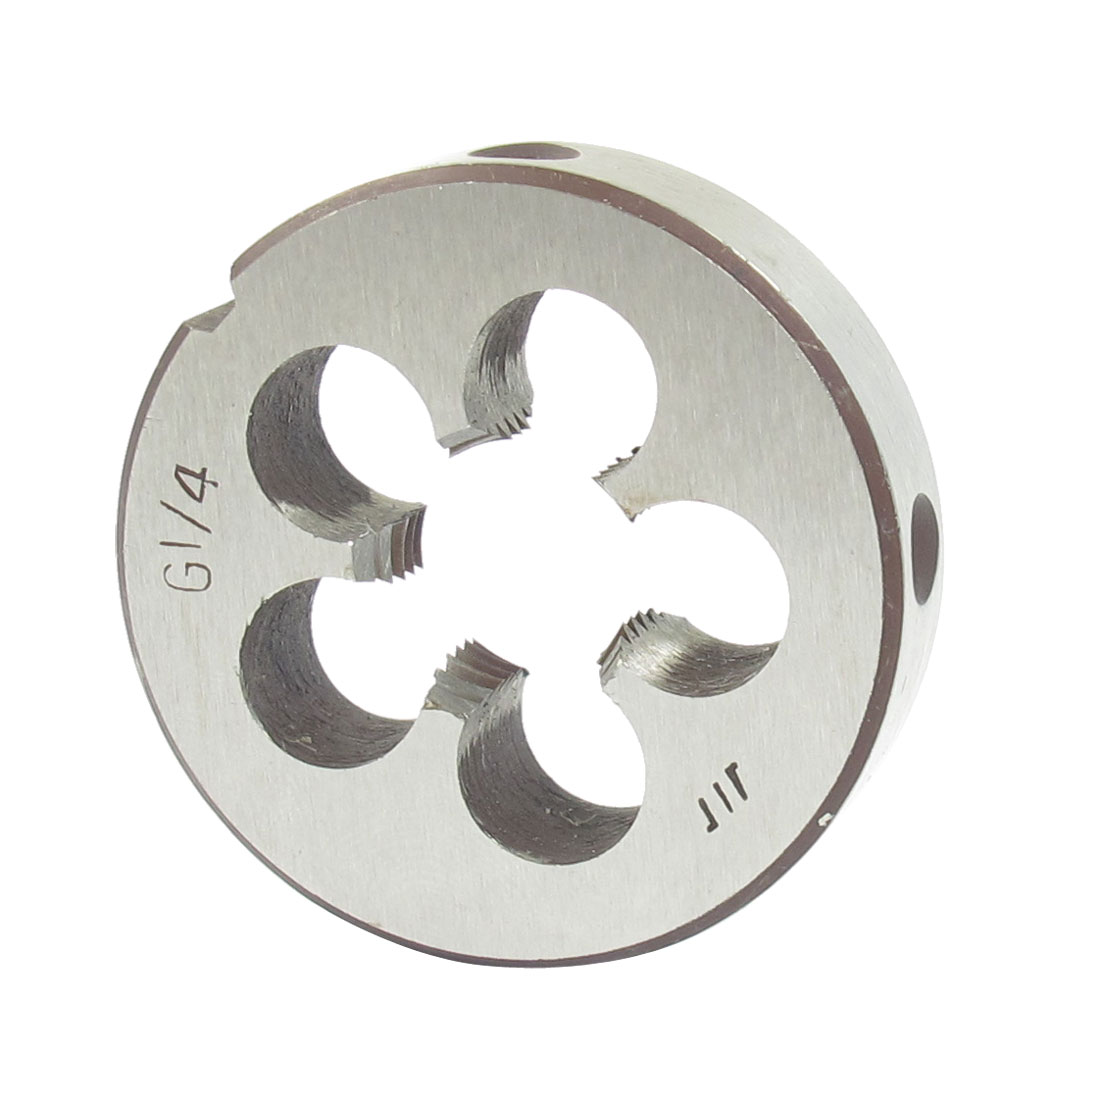 "38mm Outside Dia 10mm Thickness G 1/4"" Round Thread Die Hand Tool"